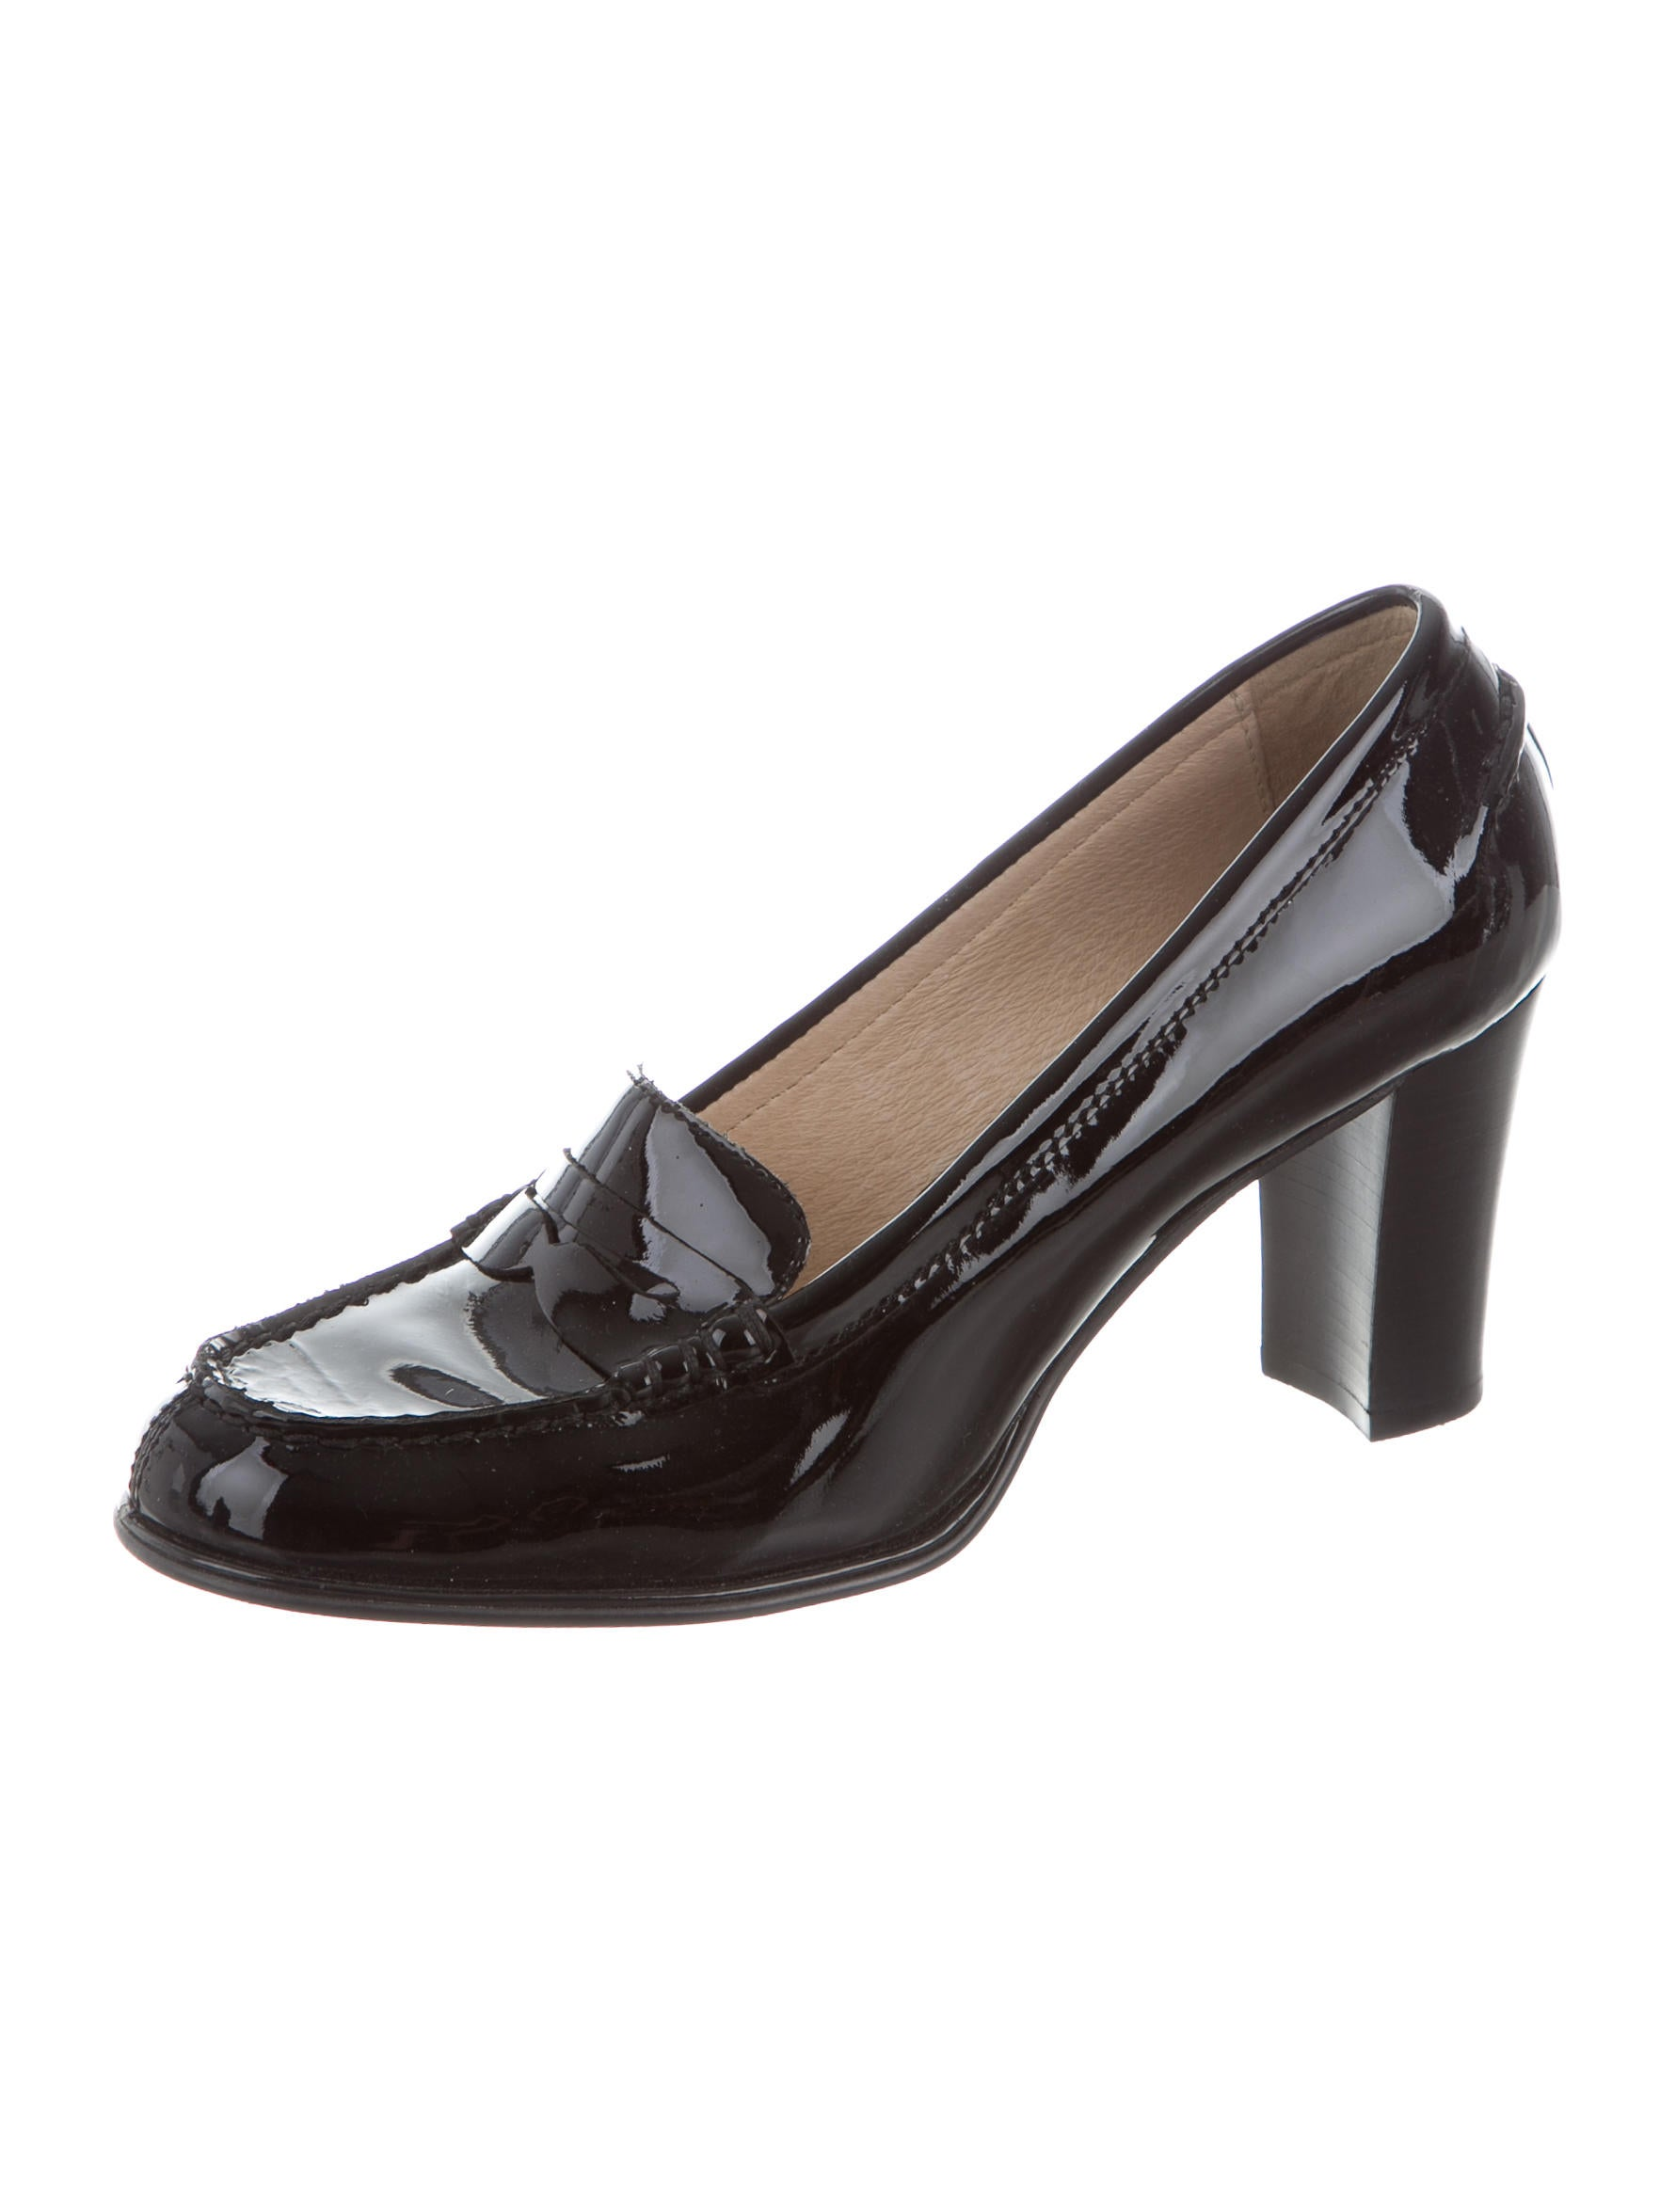 bayville men Michael kors - bayville loafer pumps saksoff5thcom, offering the modern energy, style and personalized service of saks off 5th stores, in an enhanced, easy-to-navigate shopping experience.